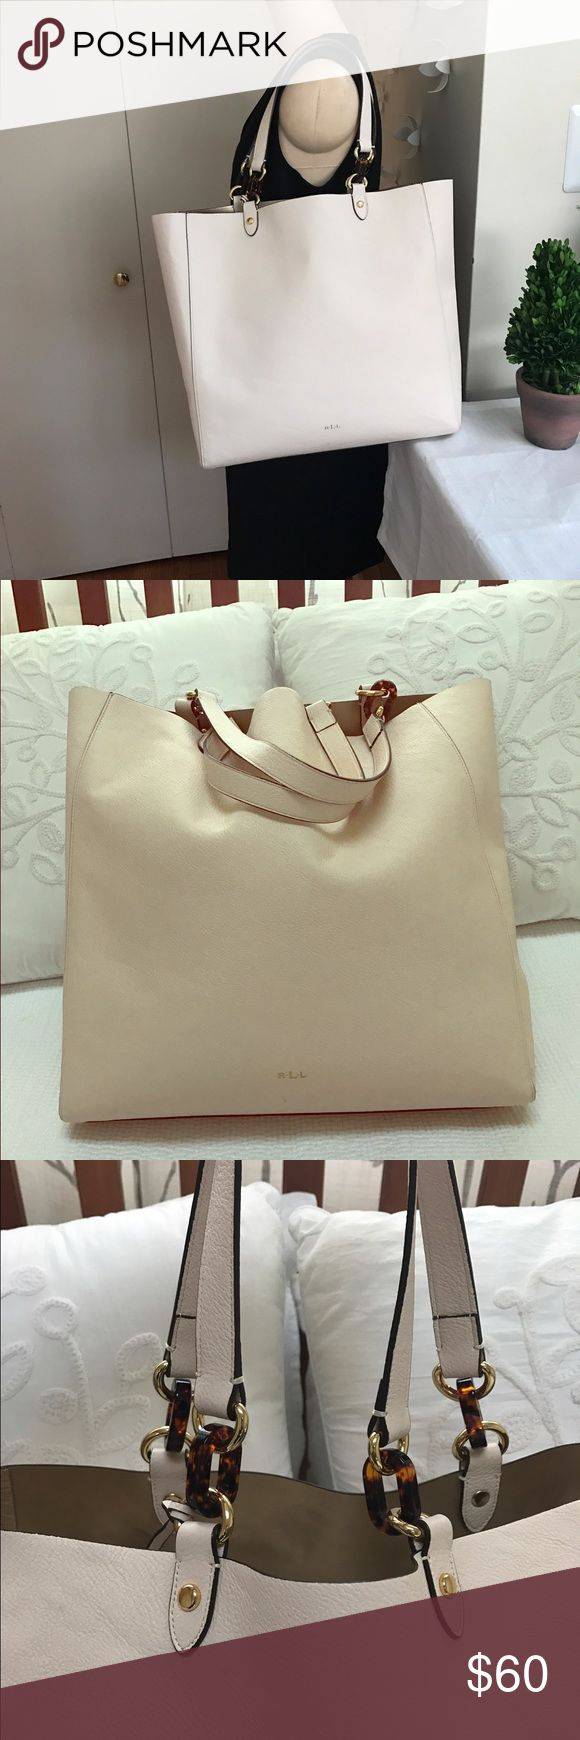 Authentic Ralph Lauren Cream Tote Bag Authentic Ralph Lauren Cream Tote Bag. It's a very nice creamy vanilla bag with a soft gold interior. Inside of the Bag is impeccably clean. There are some marks on the outside of the bag which are indicated in the close up photos. A true classic Ralph Lauren Tote Bag. Simple and Chic. Price is firm. Ralph Lauren Bags Totes